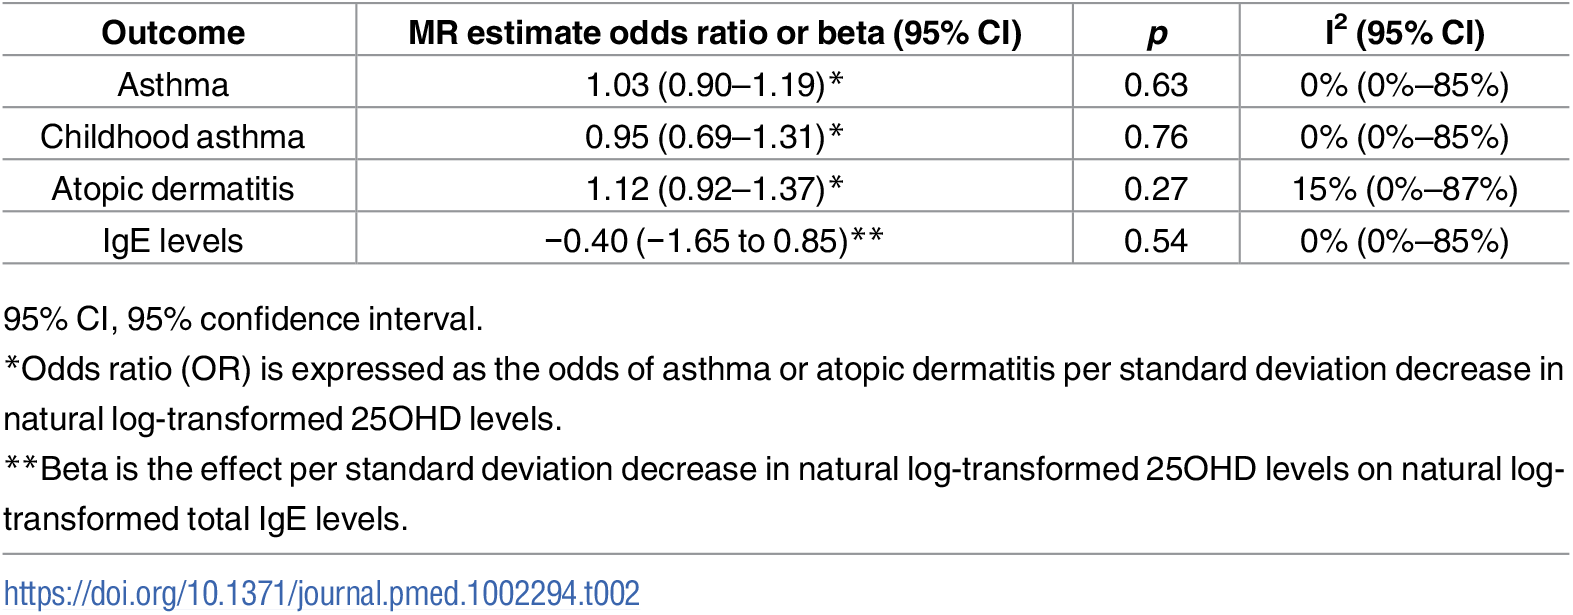 Mendelian Randomization (MR) estimates of the association of decreased 25-hydroxyvitamin D (25OHD) on the risk of asthma, atopic dermatitis, and elevated Immunoglobulin E (IgE) levels.